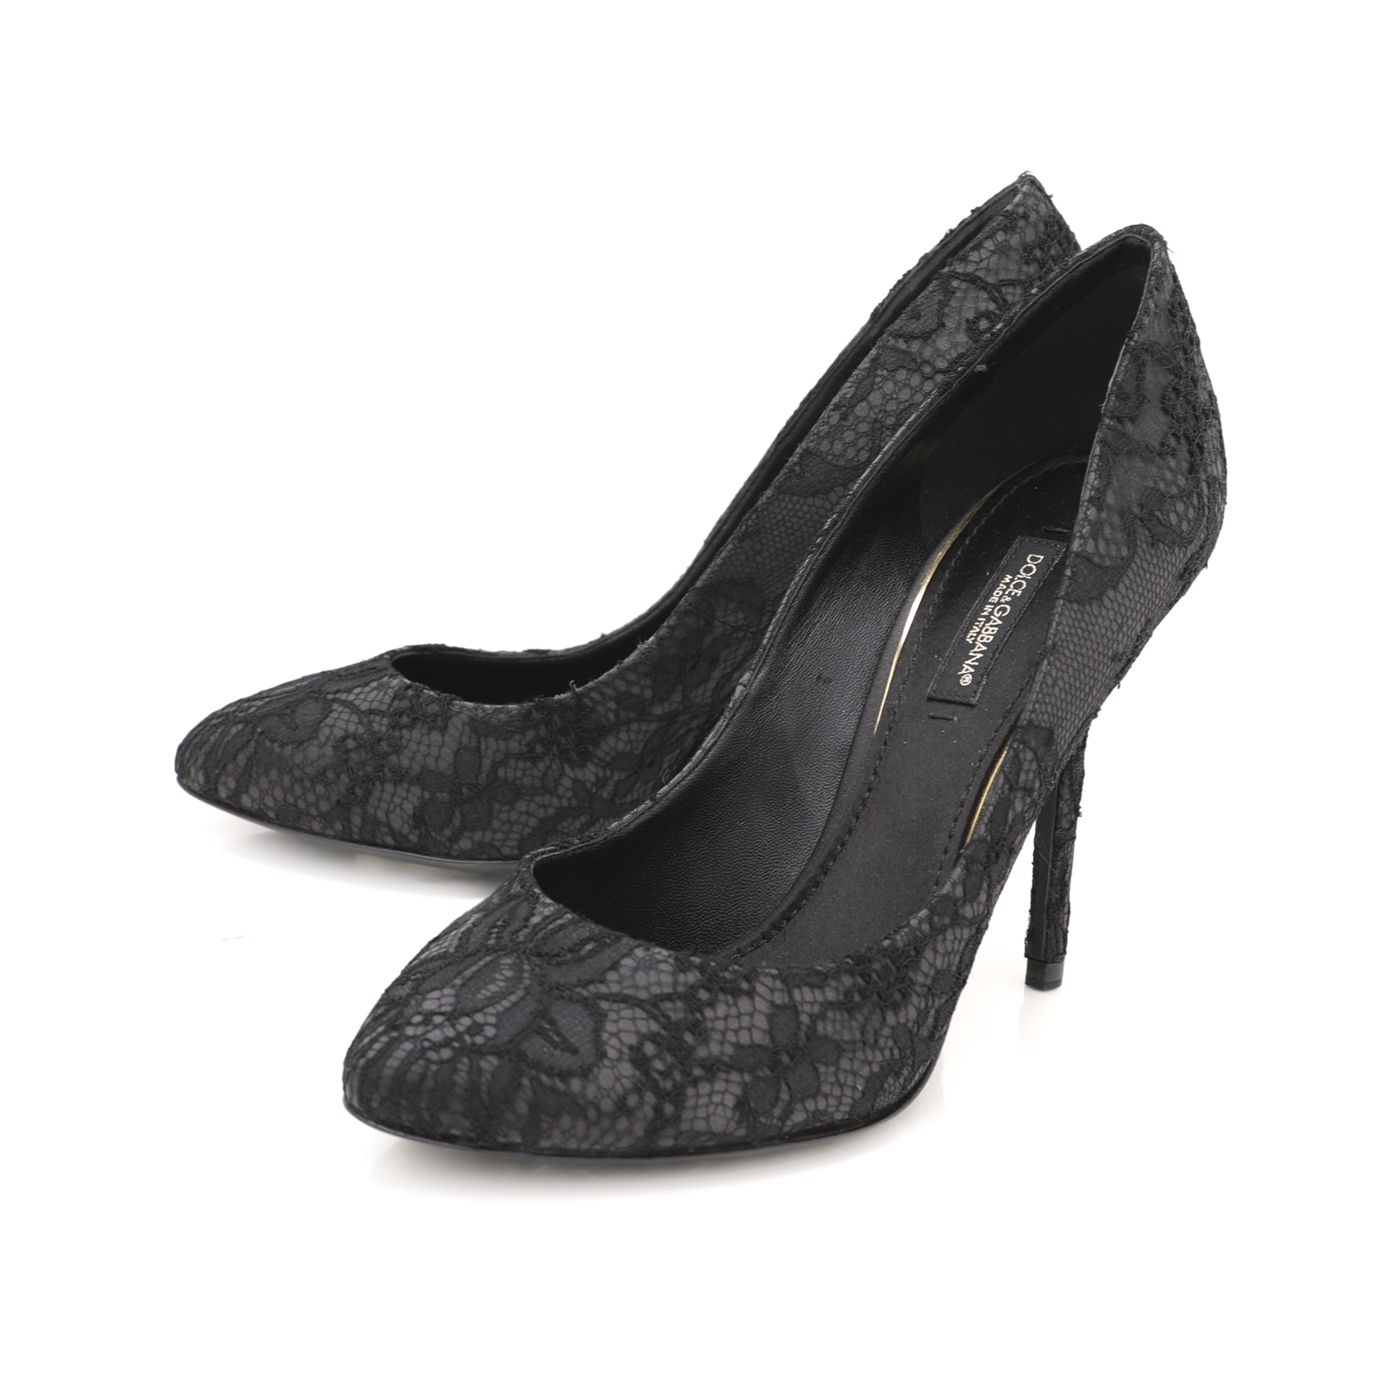 Dolce & Gabbana Black Satin and Lace Pumps 36.5